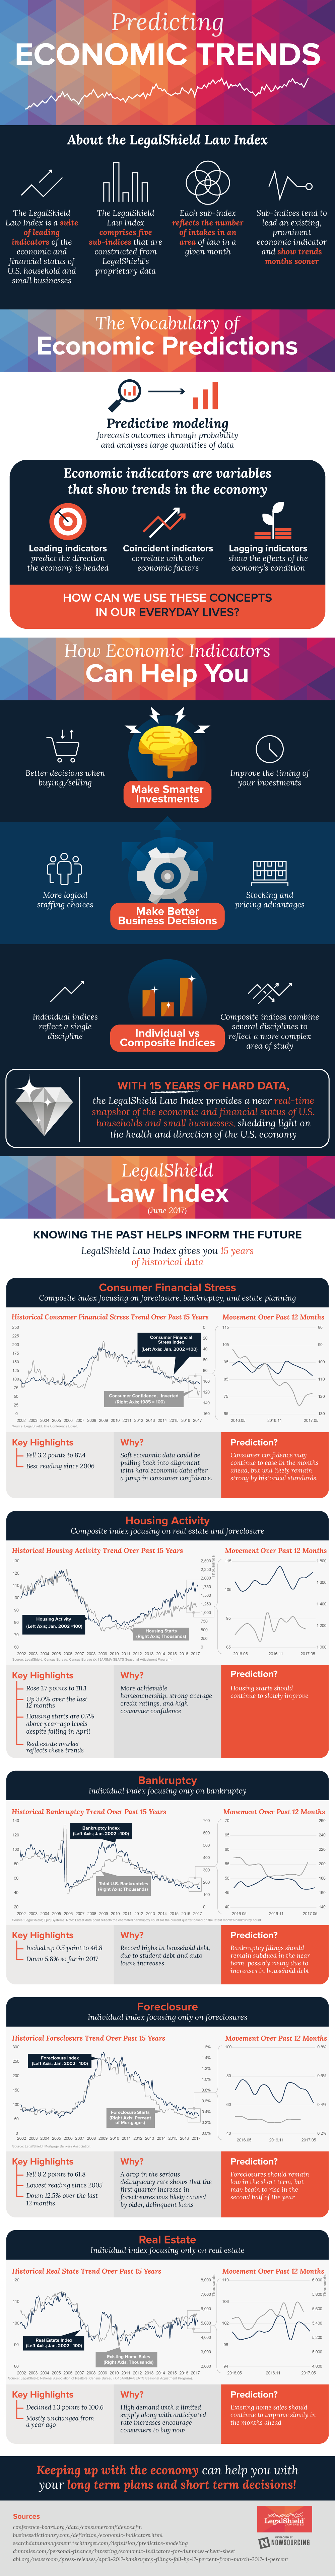 Paying Attention To Economic Indices Can Help Your Business [Infographic]